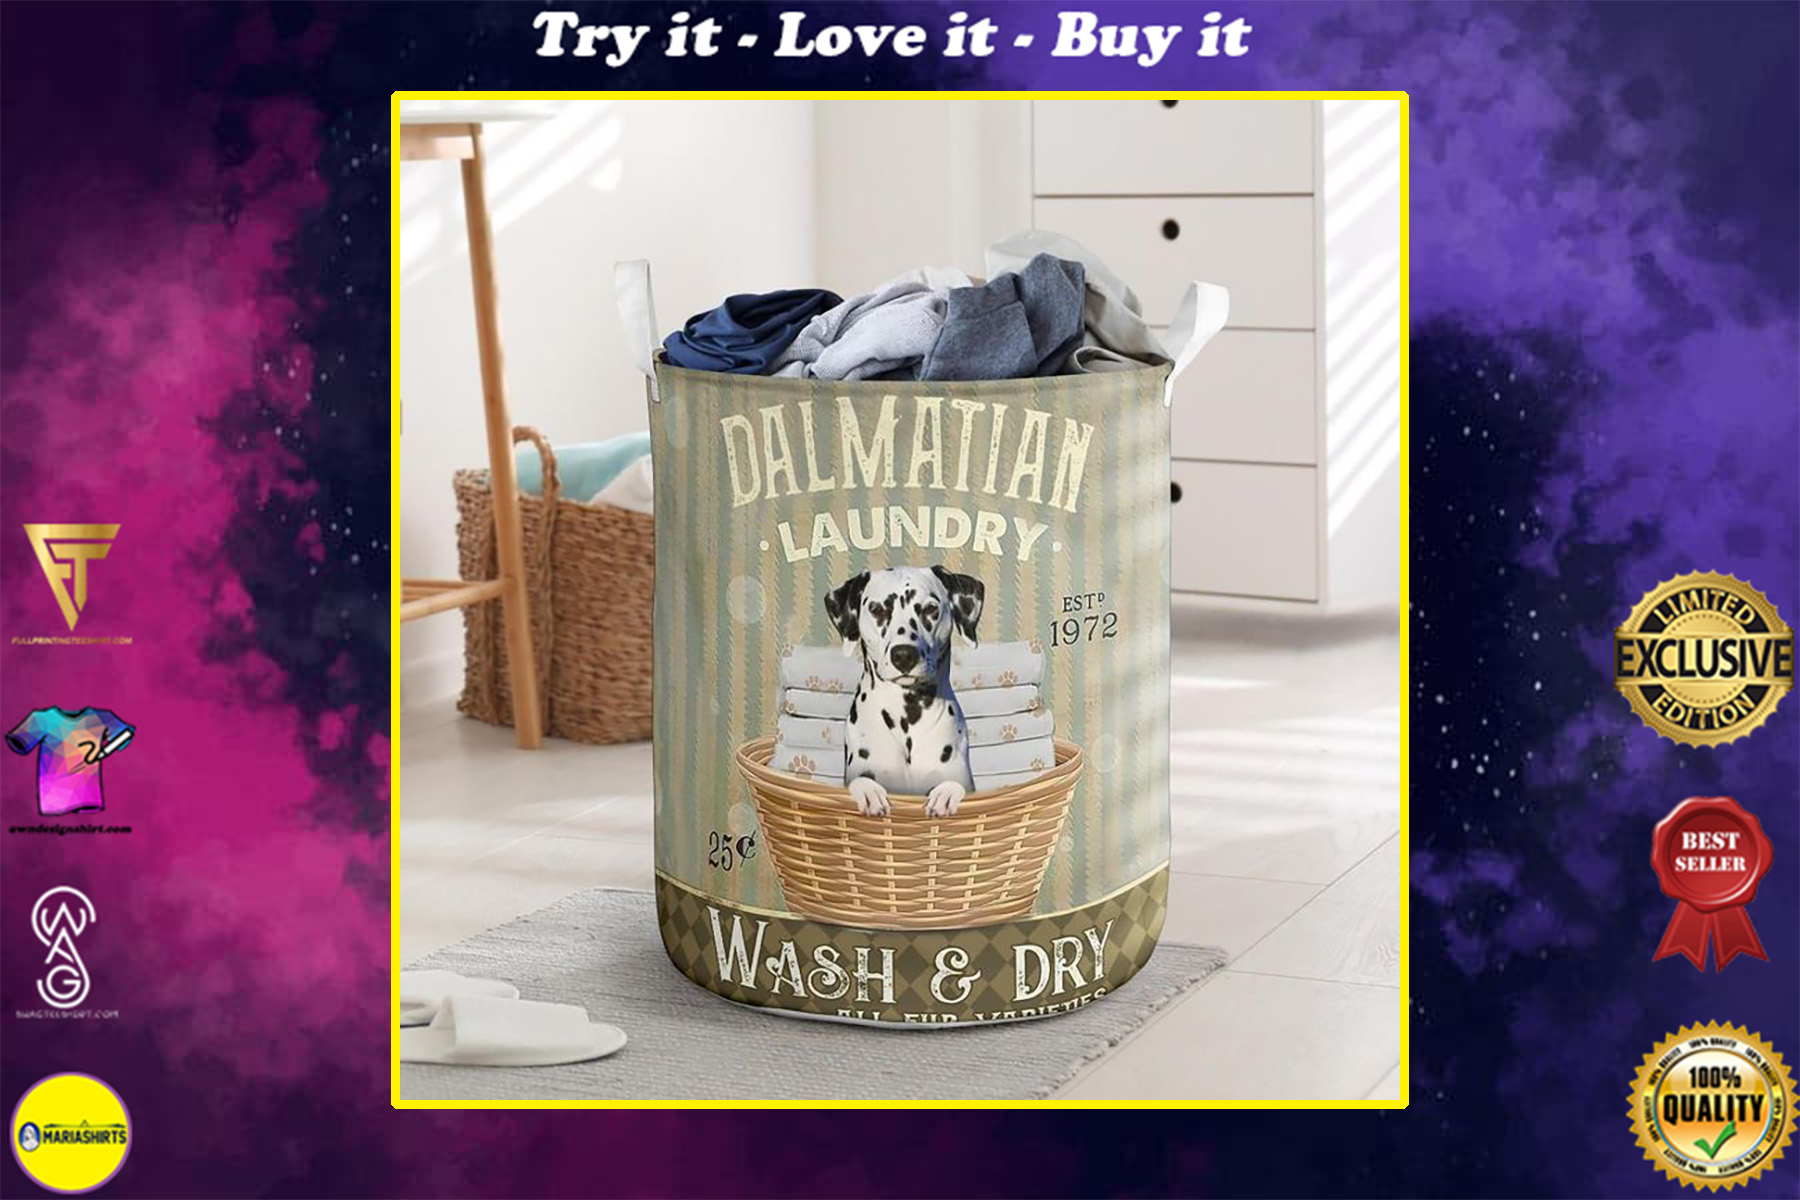 dalmatian wash and dry all over printed laundry basket